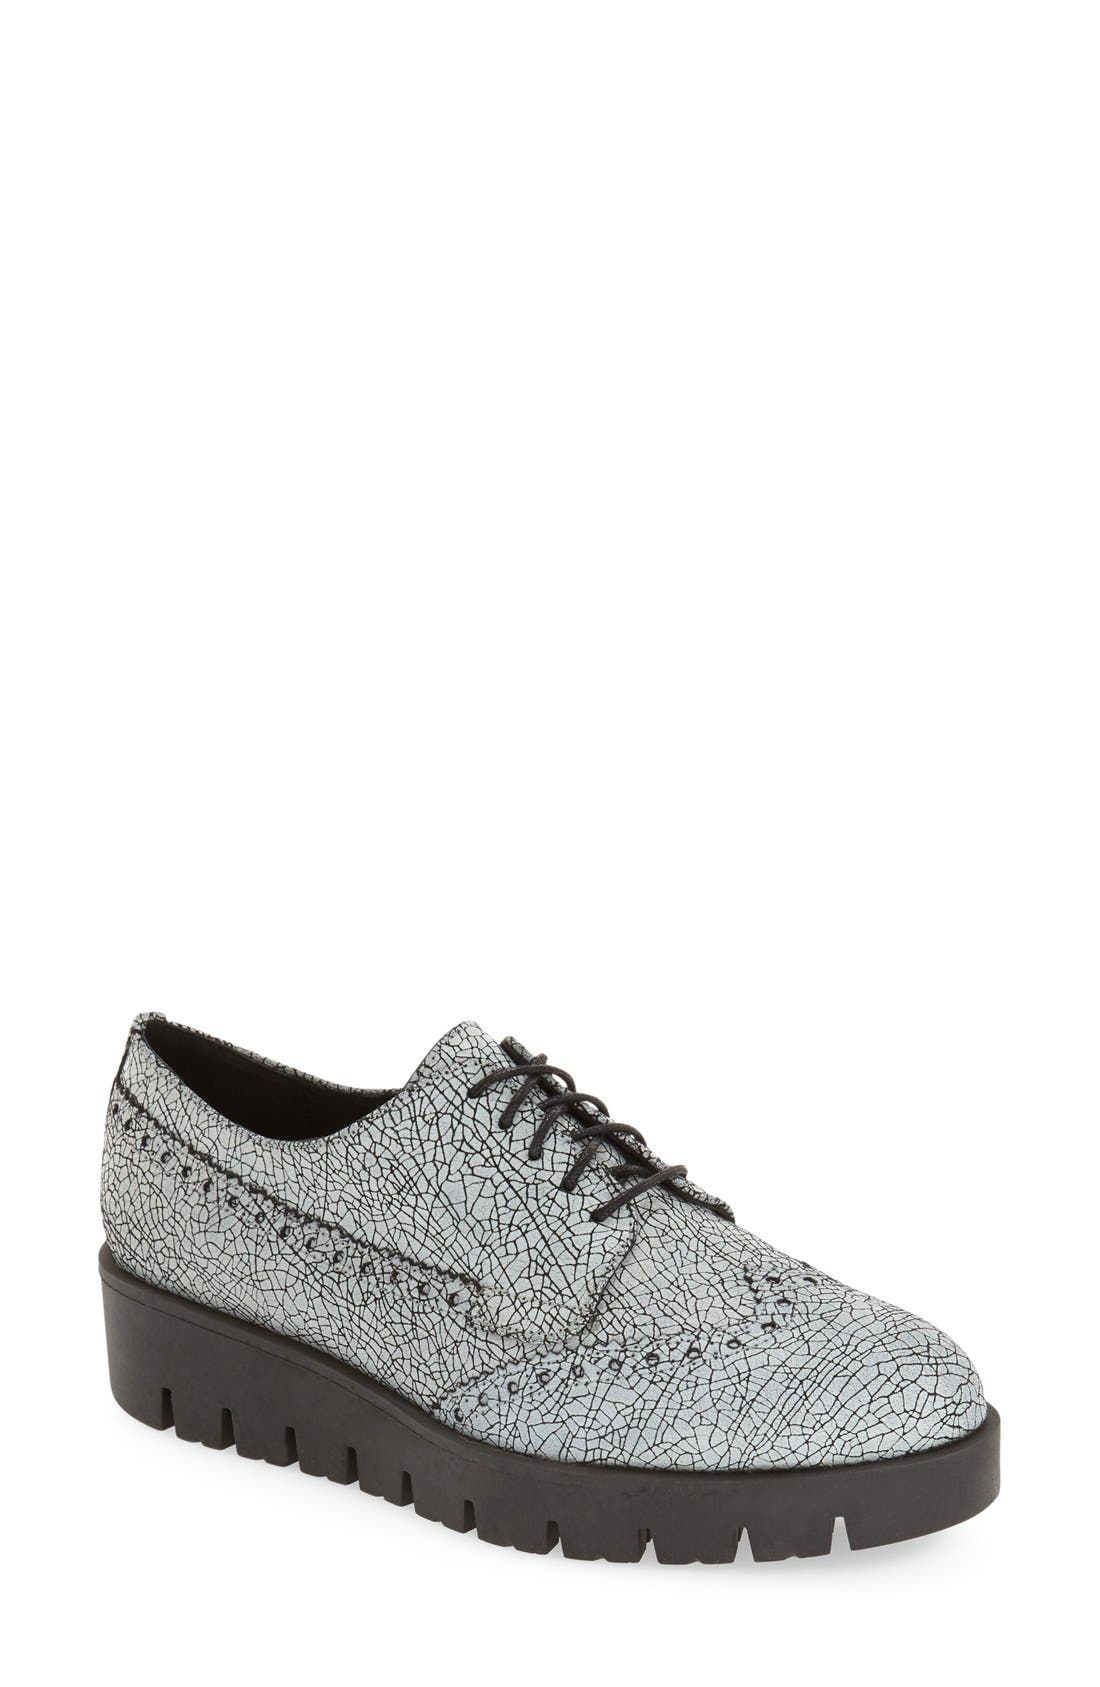 Shellys London 'Tarrah' Platform Oxford (Women)